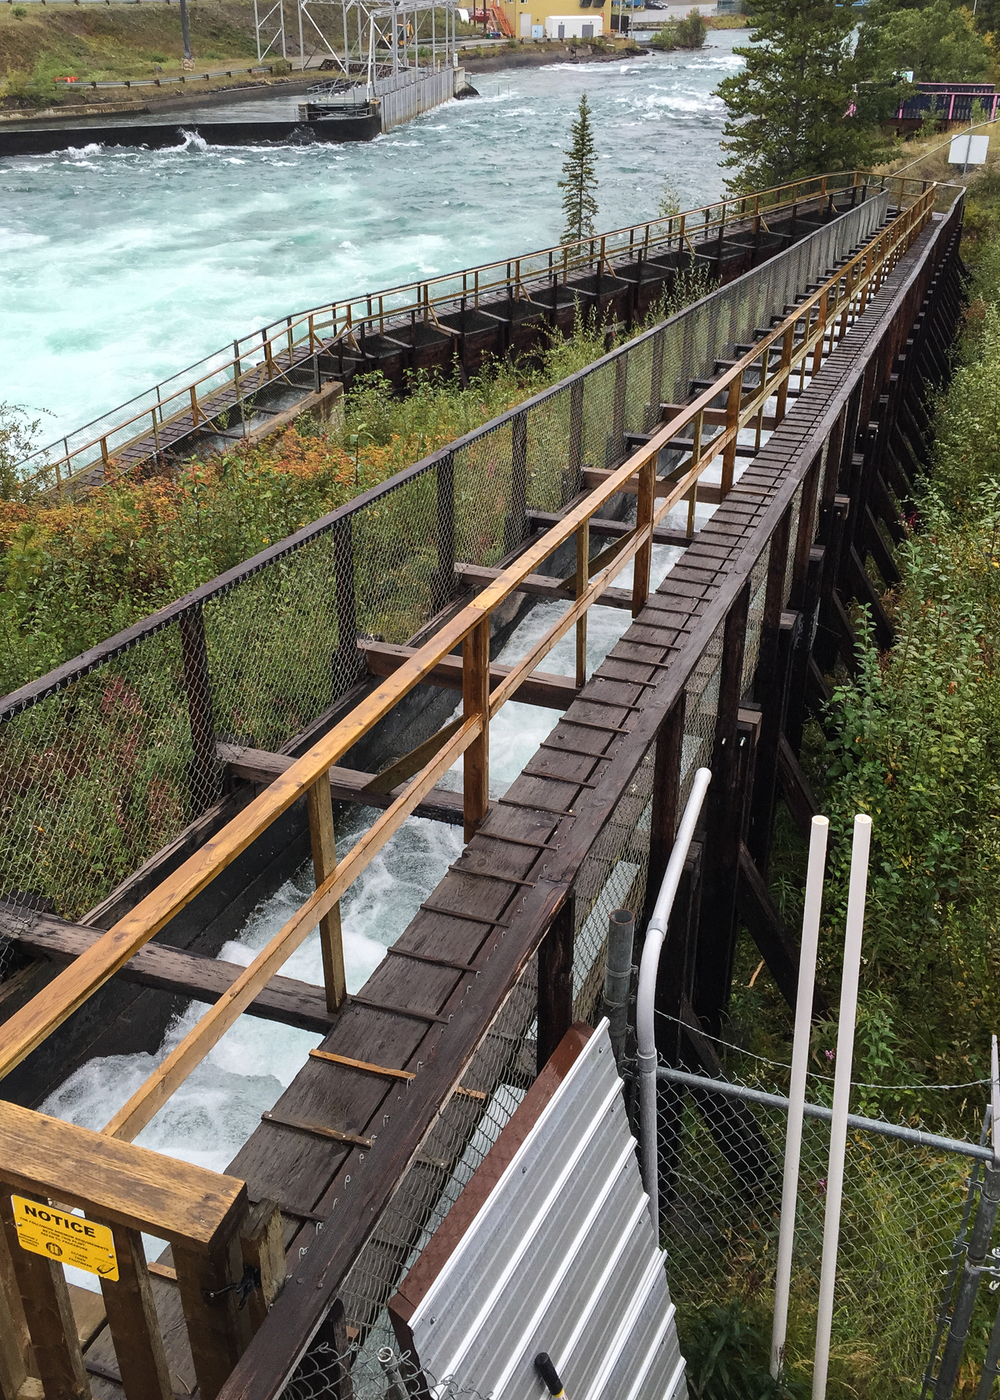 The Whitehorse fish ladder - supposedly the biggest in the world. It definitely travels a long way.